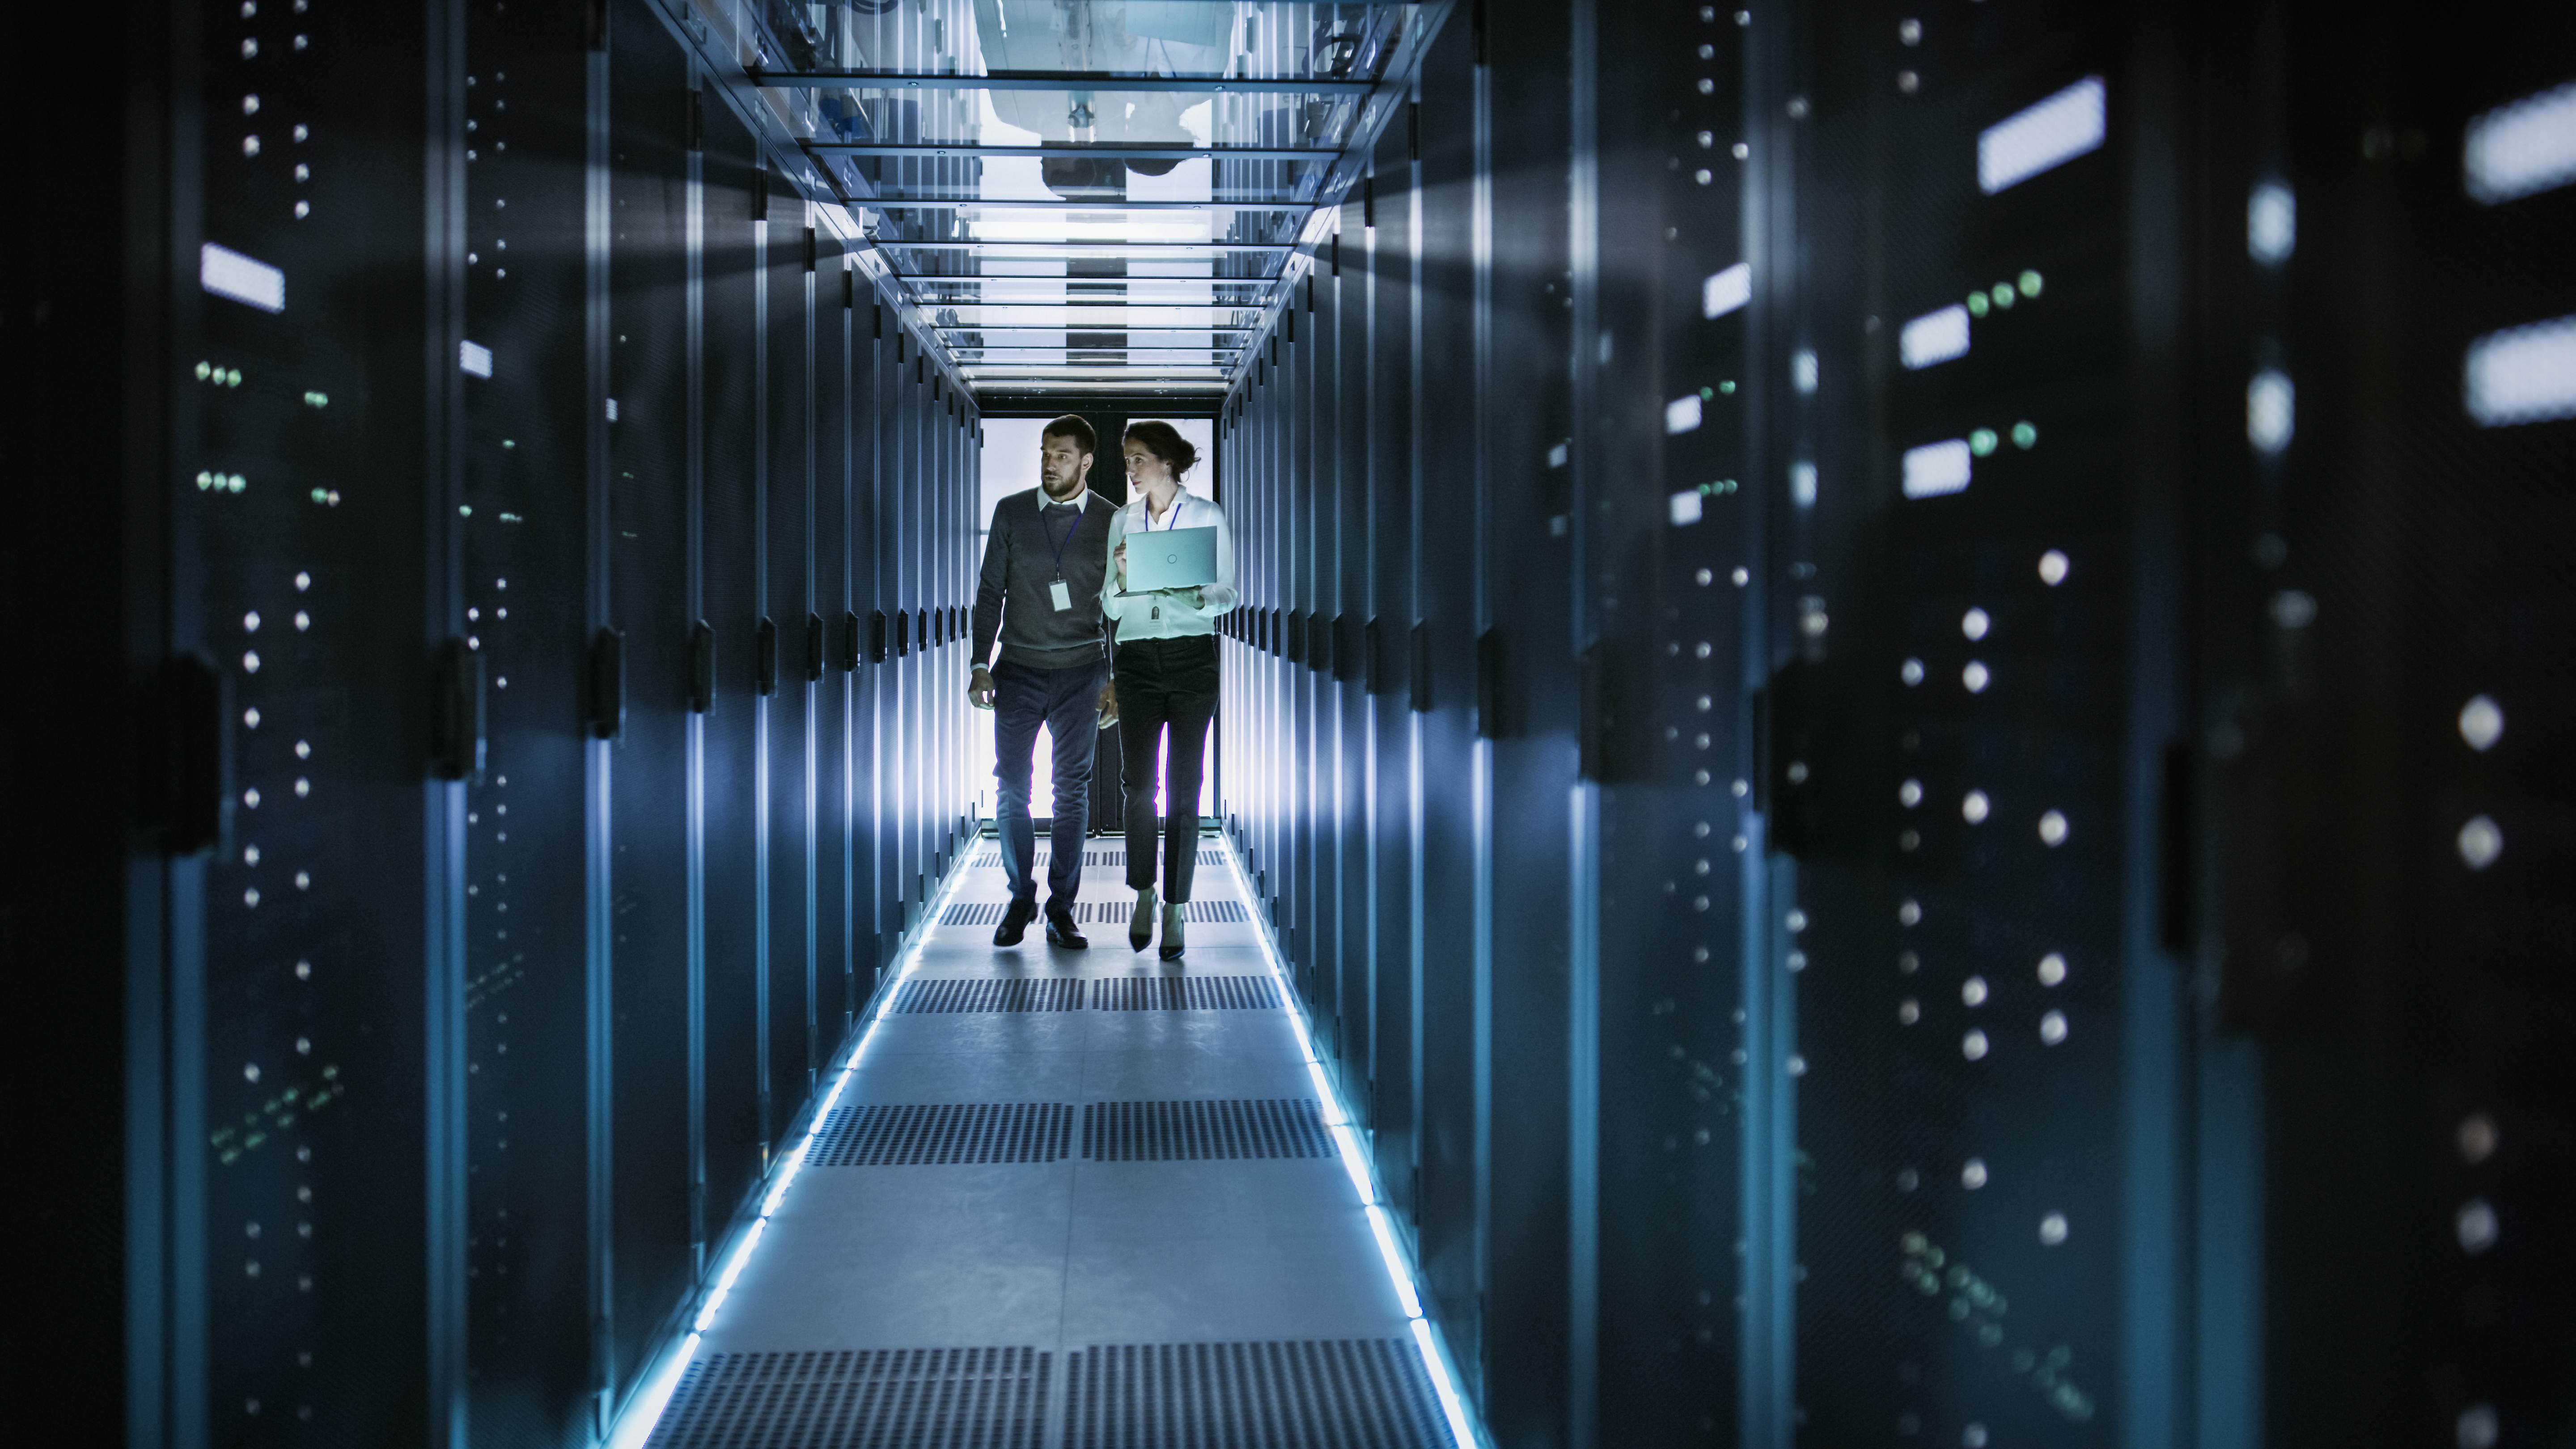 IT businessman and businesswoman walking through servers in a data center